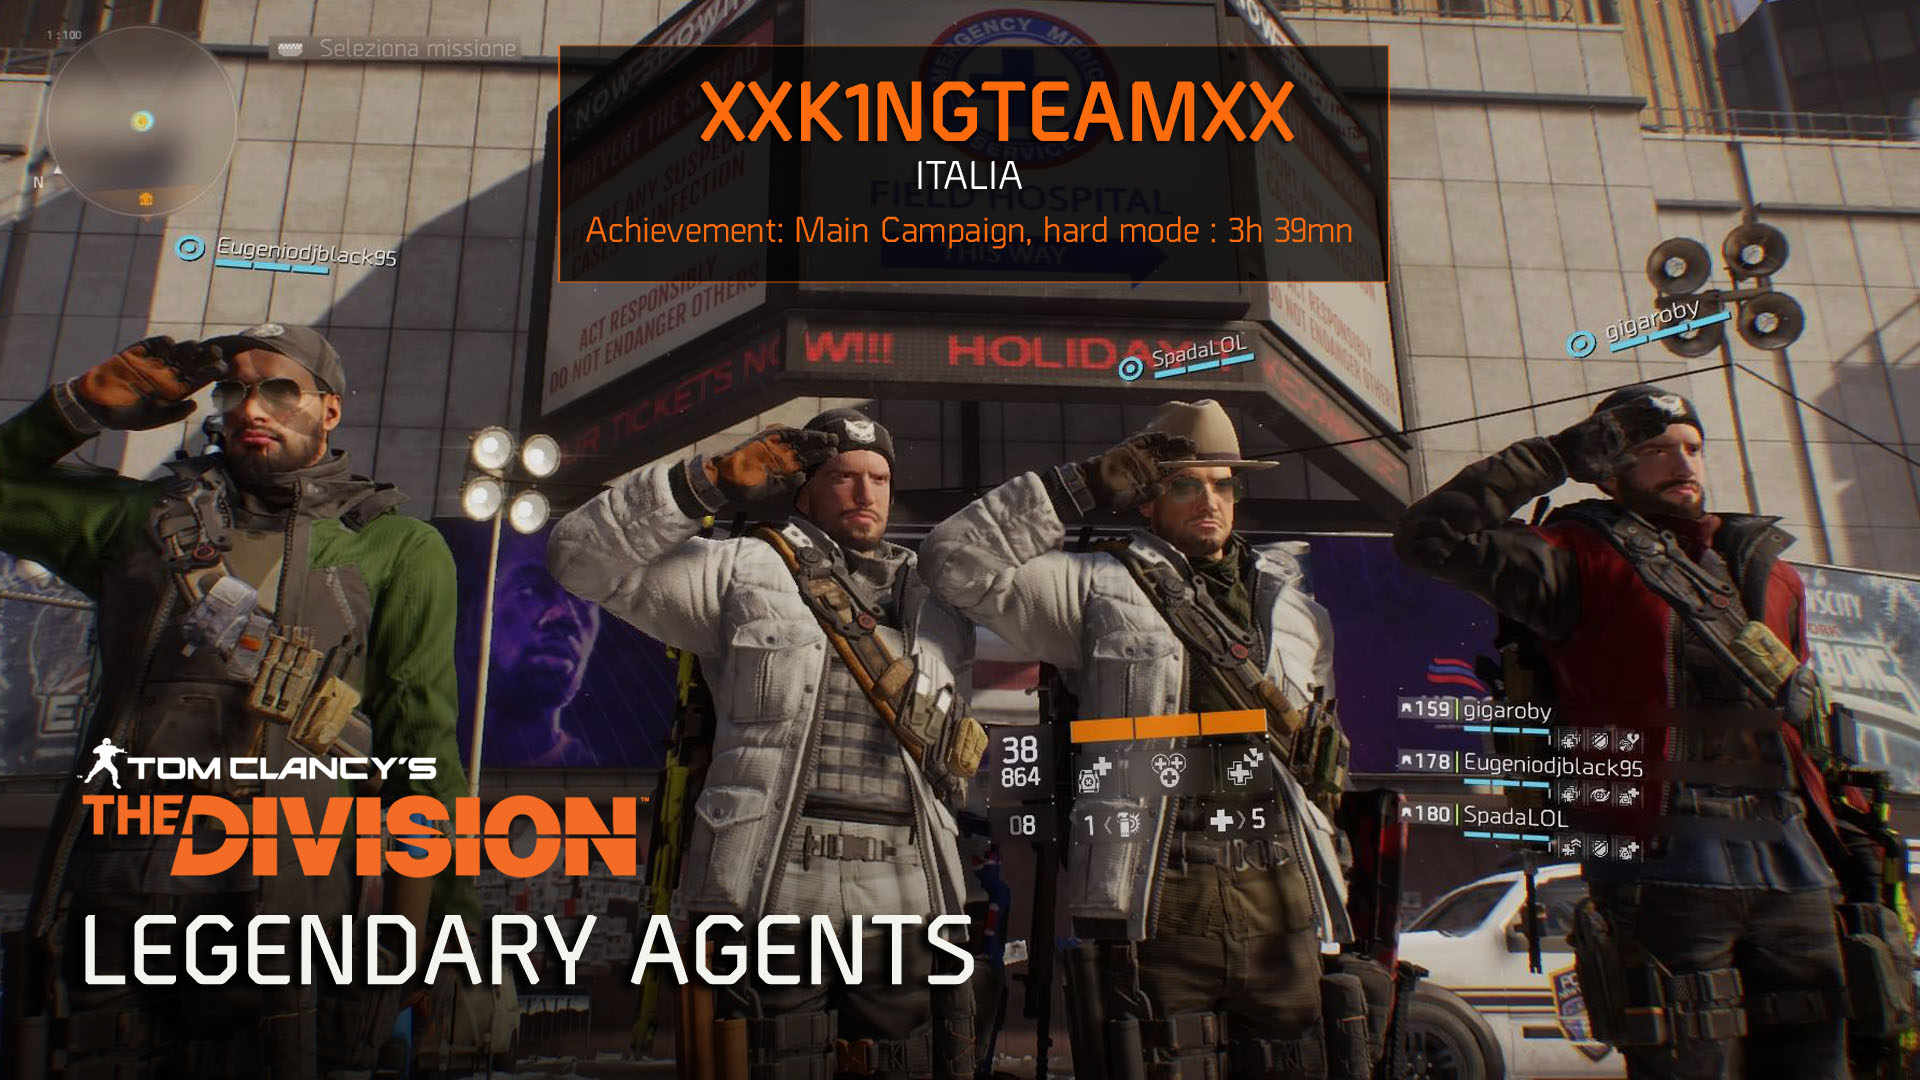 2016-04-26 [News] The Division - Legendary Agents – XxK1NGTEAMxX